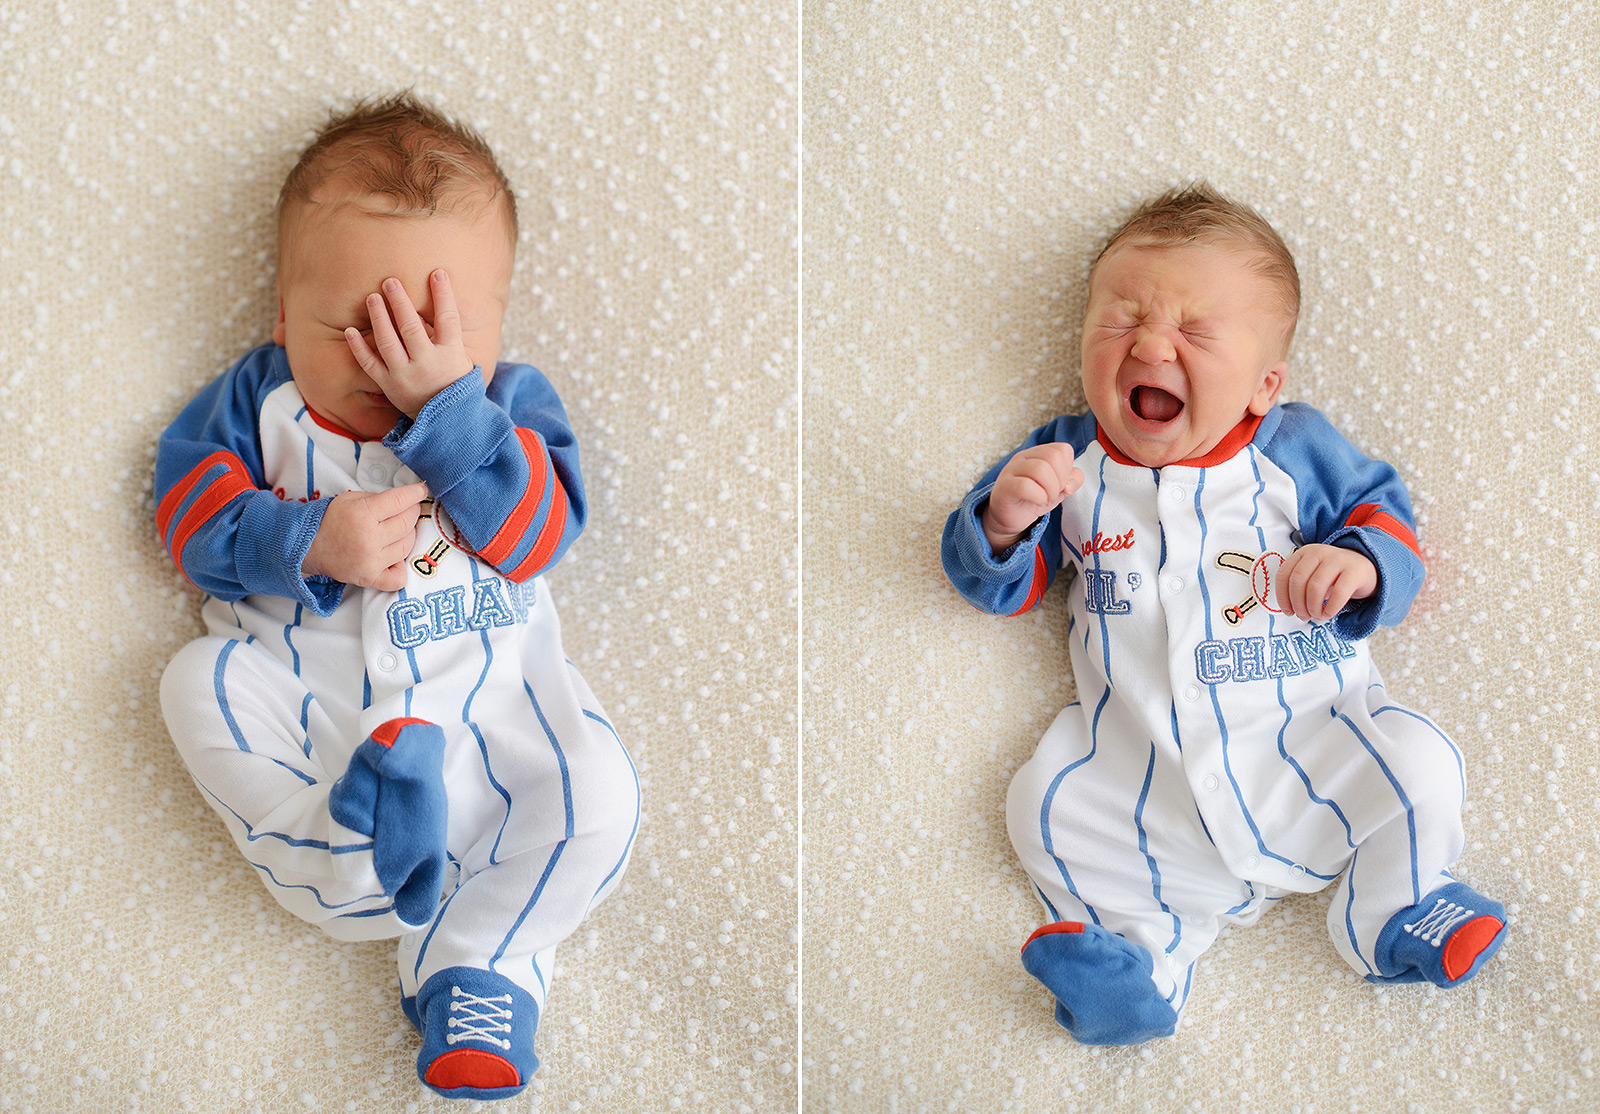 Newborn baby boy crying in baseball outfit